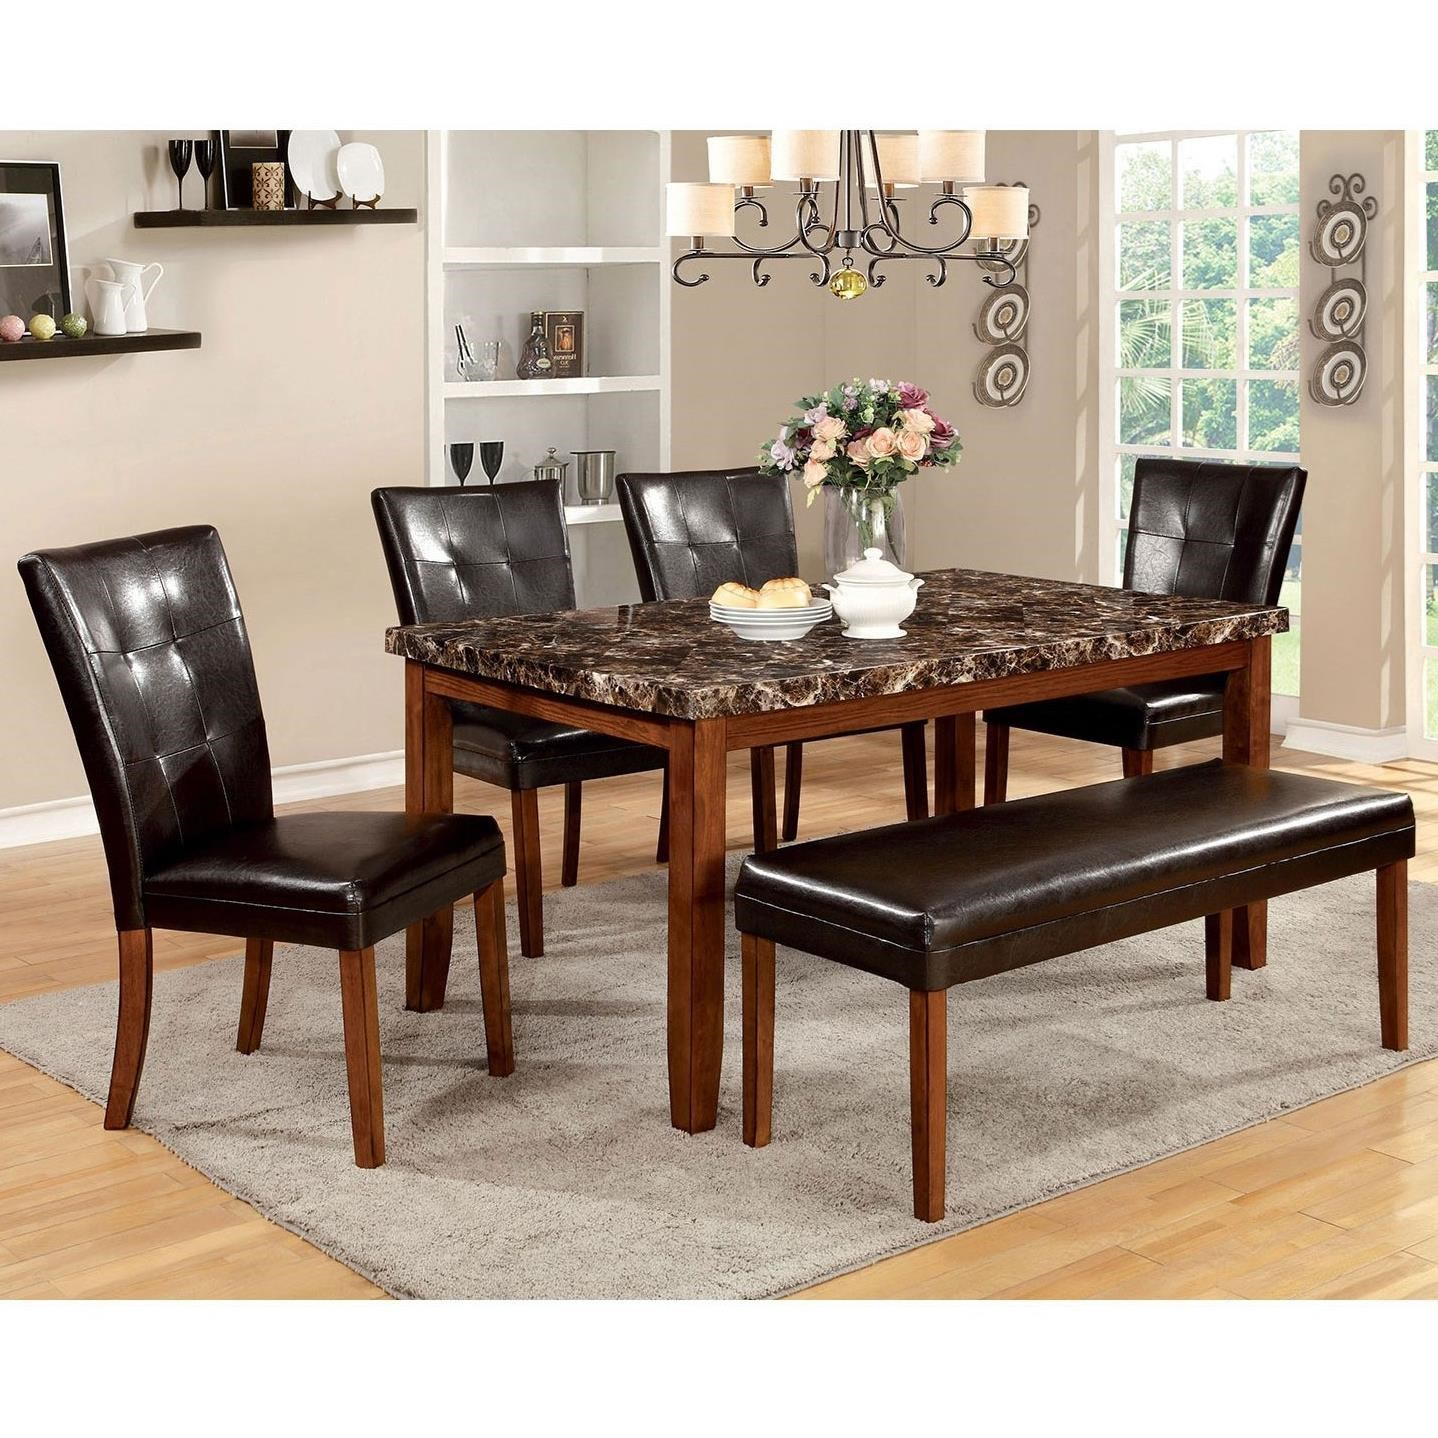 Elmore Dining Set by Furniture of America - FOA at Del Sol Furniture